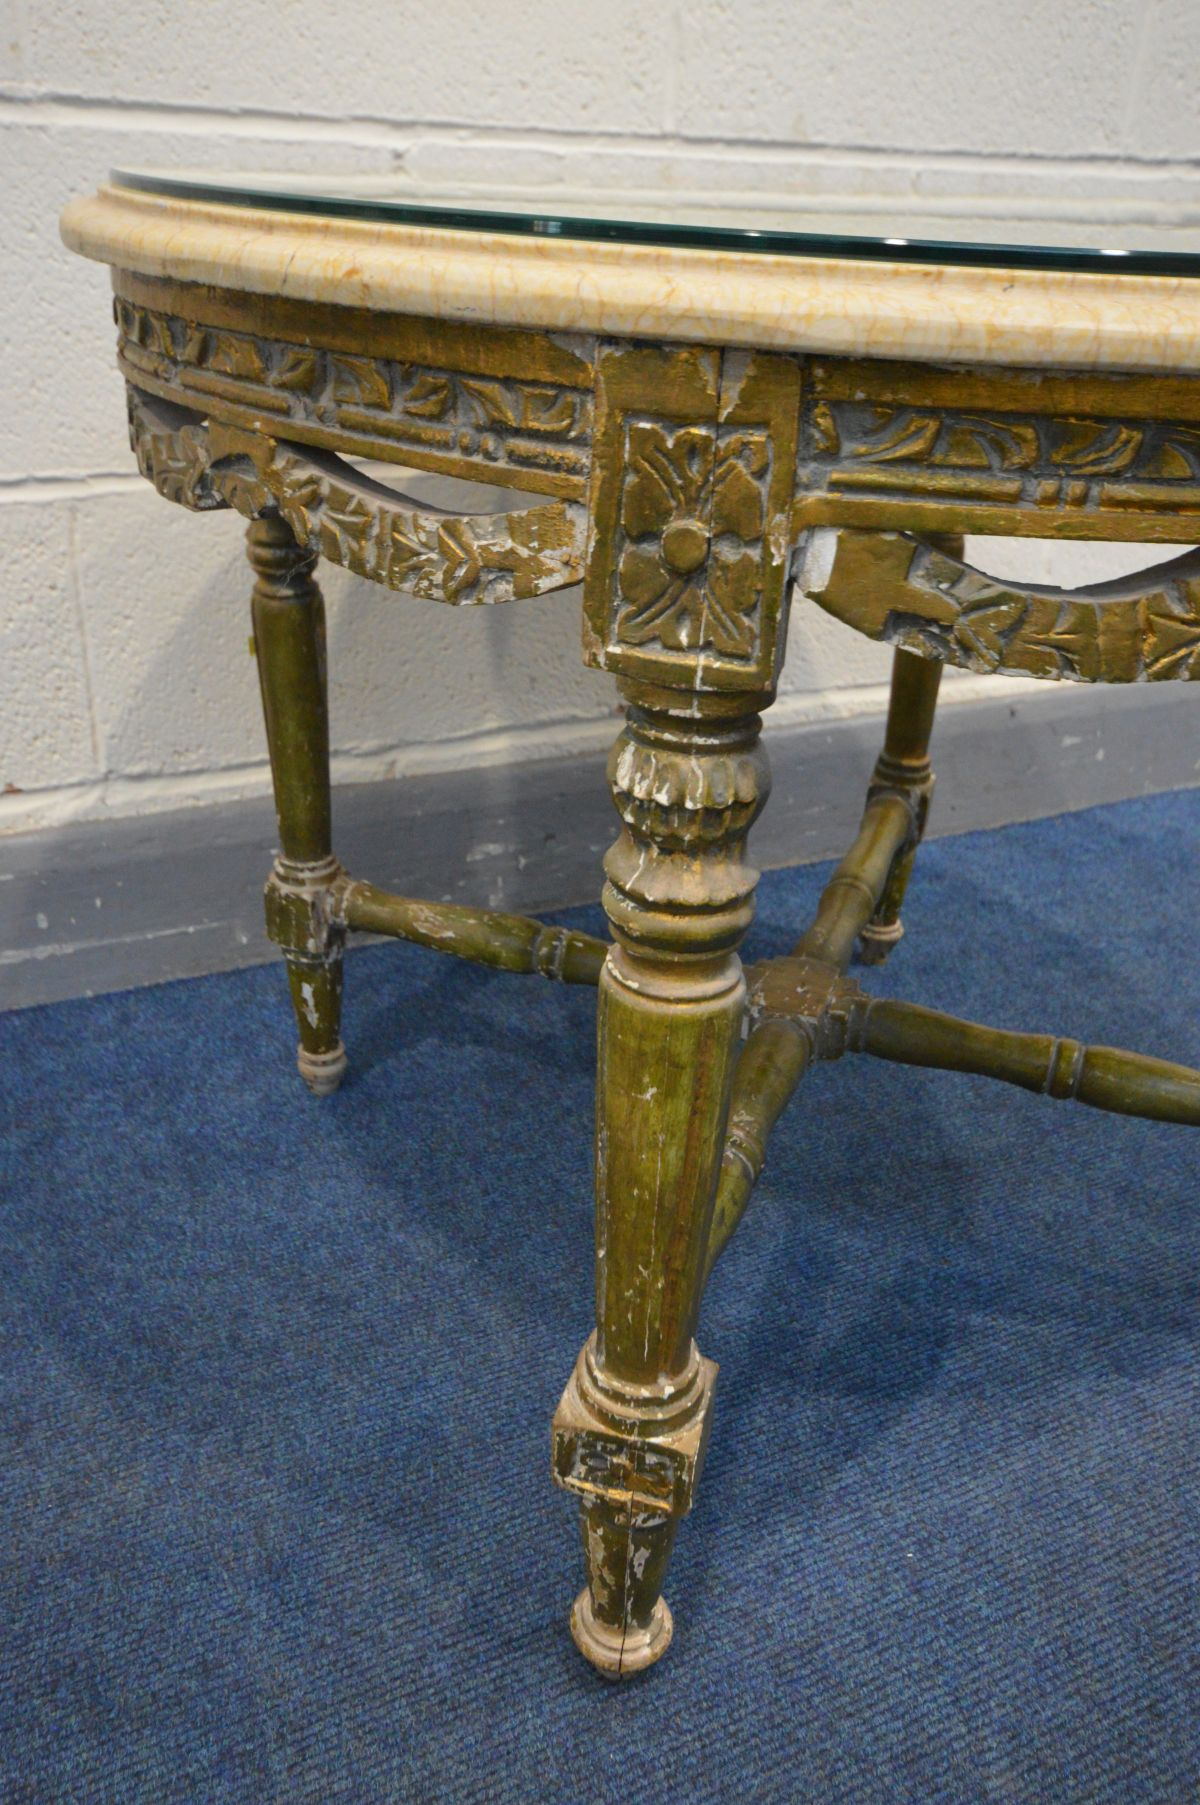 A 19TH CENTURY CIRCULAR GILTWOOD LOUIS XVI STYLE TABLE, marble top, foliate carving, on four - Image 3 of 5